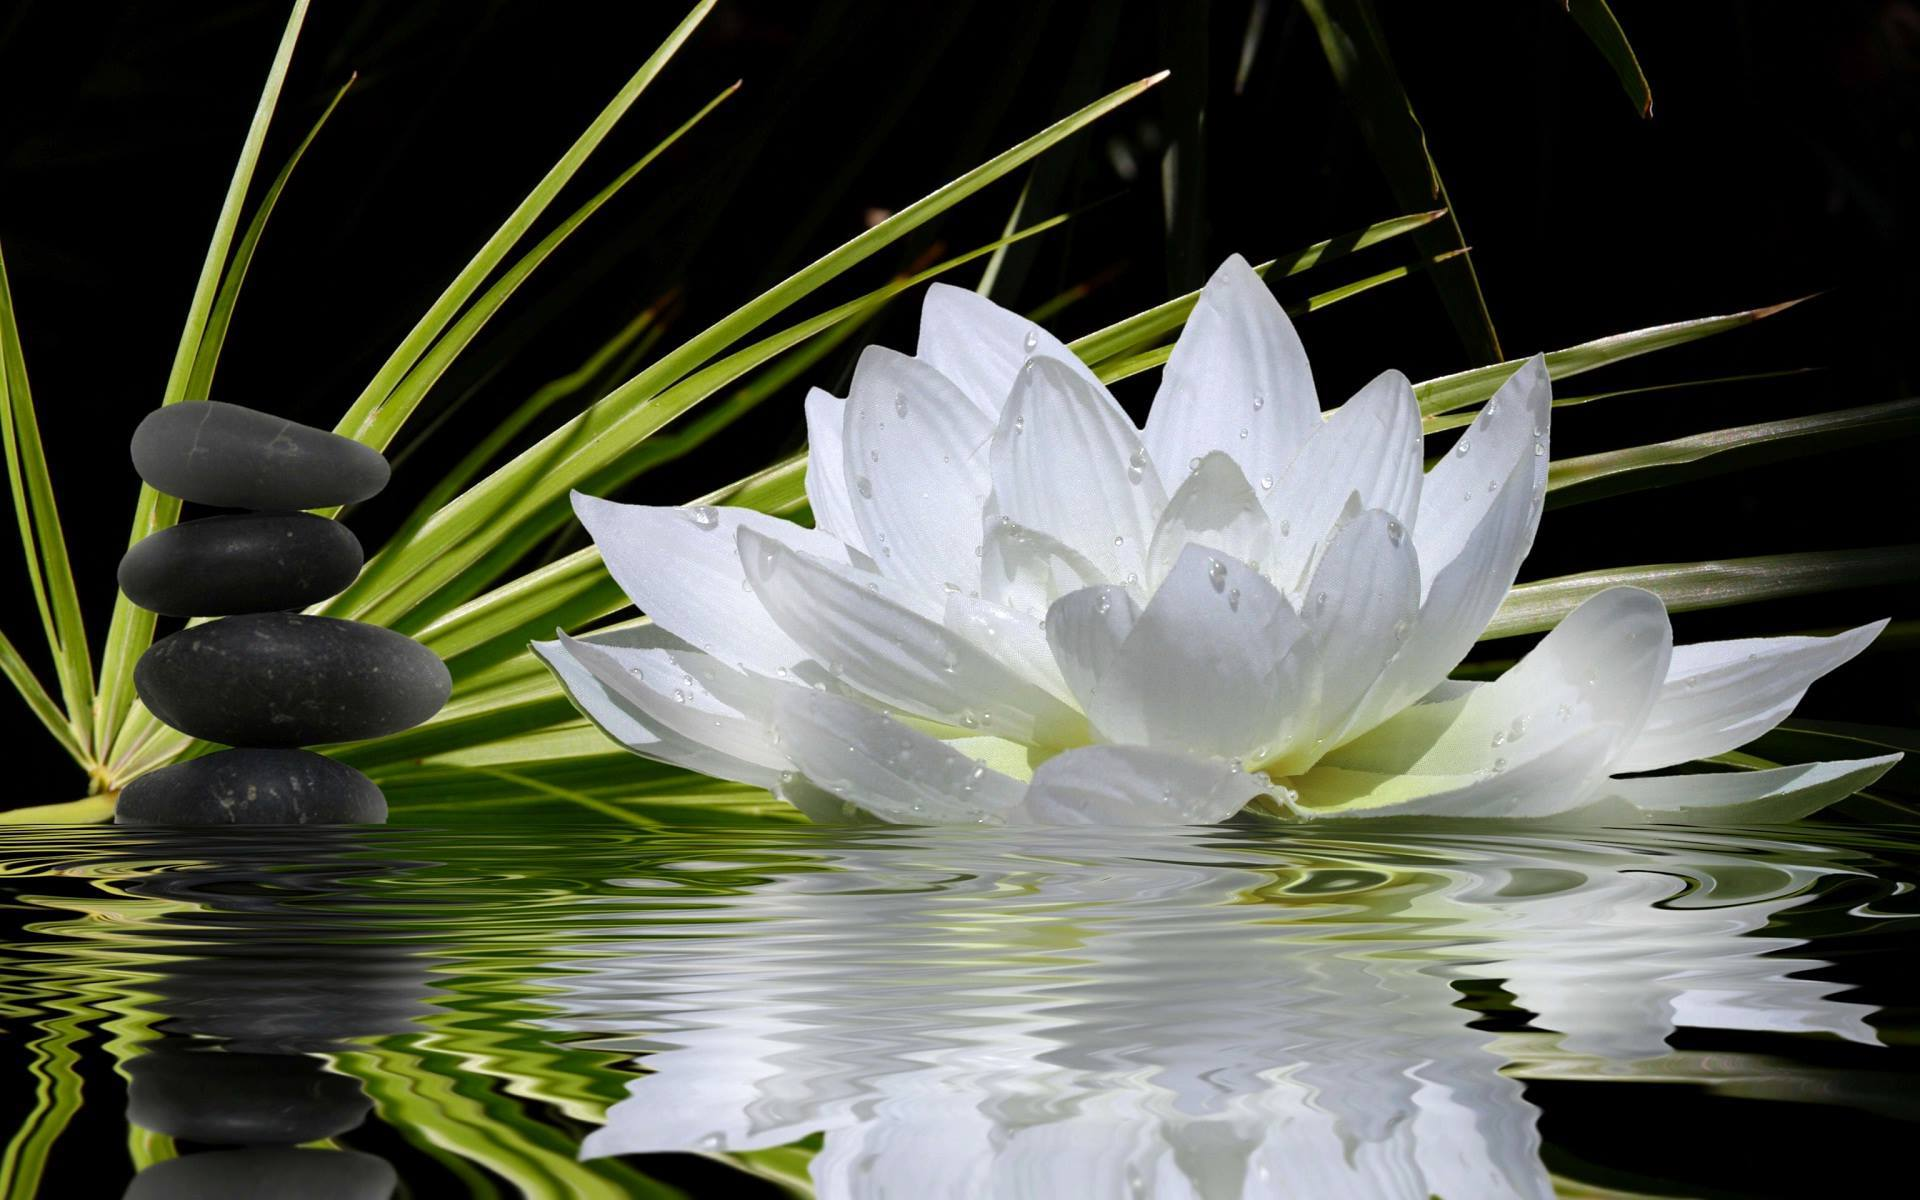 Herenow4u article archive 02092016 acharya shiv muni news the inner lotus too has never seen a drop of mud or dirty water it is pure and bright and beautiful the lotus flower a perfect analogy of the human izmirmasajfo